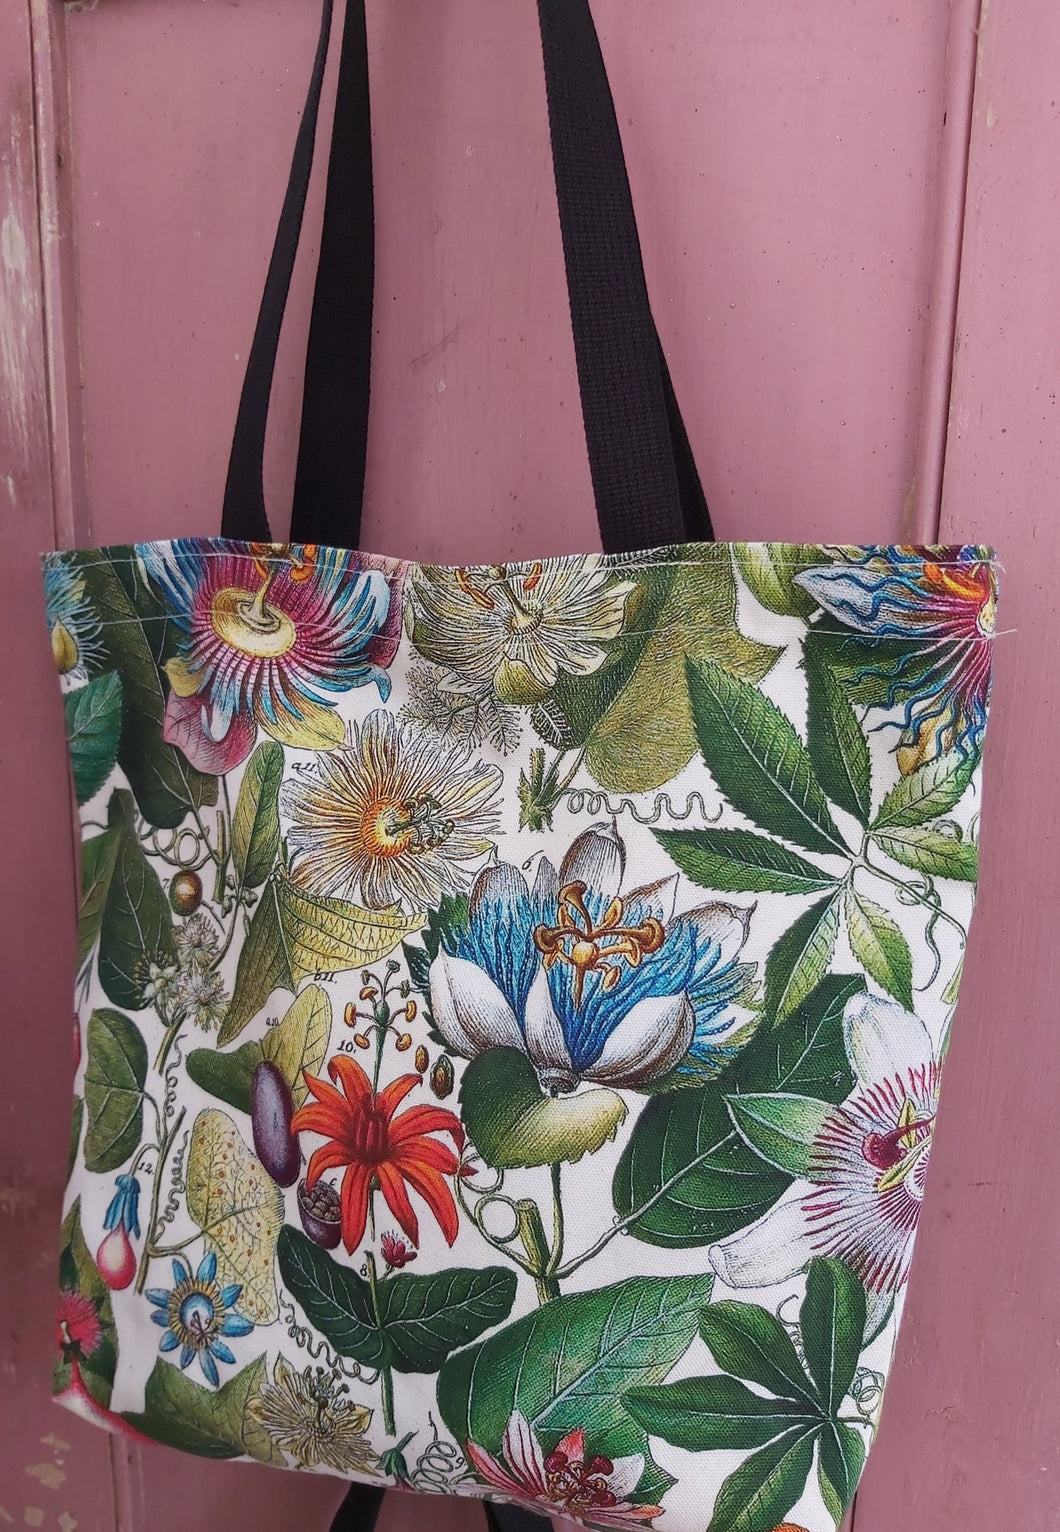 Passiflora Antique Print Small Tote / Shopping Bag